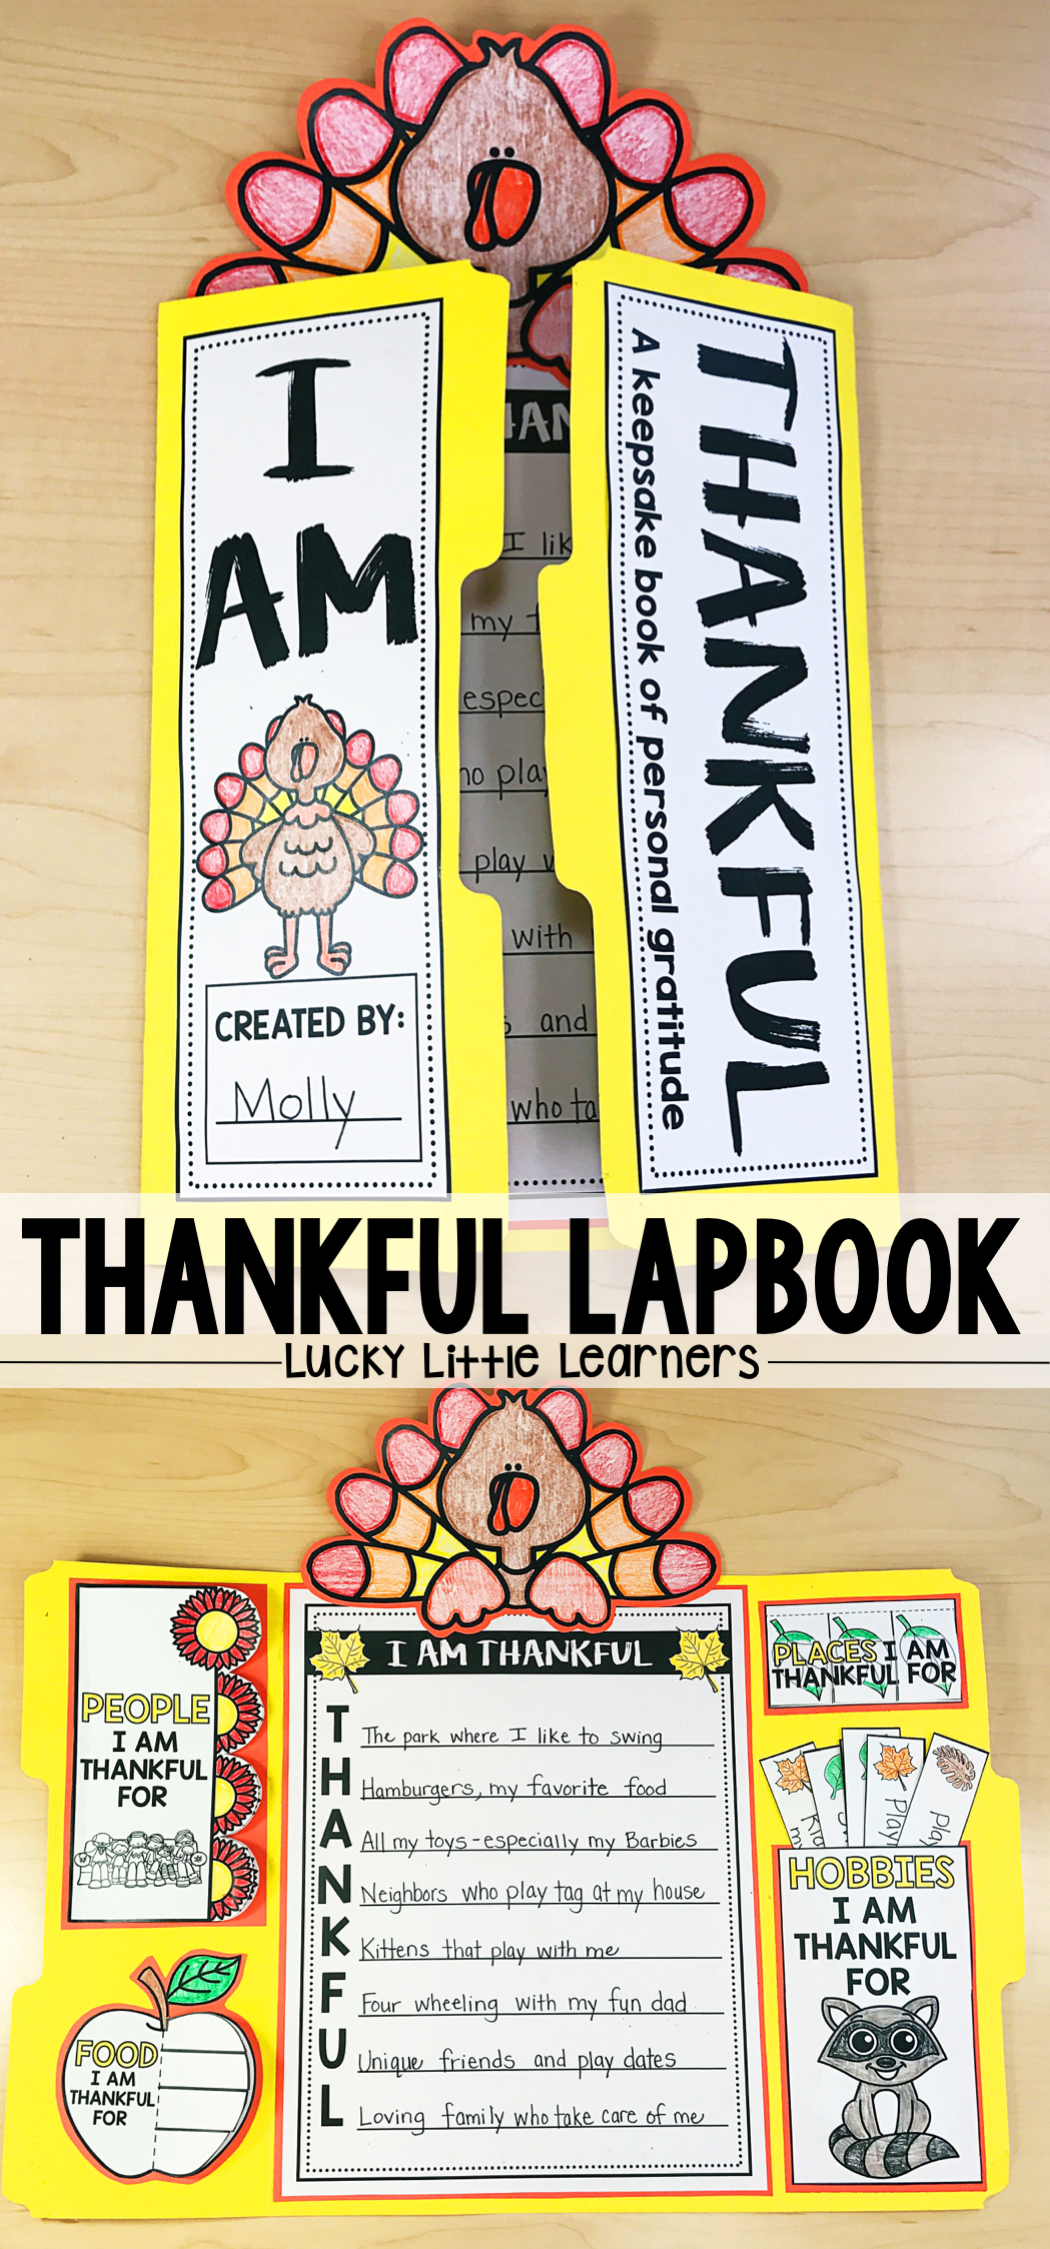 This Thankful Lapbook Is The Perfect Writing Project For